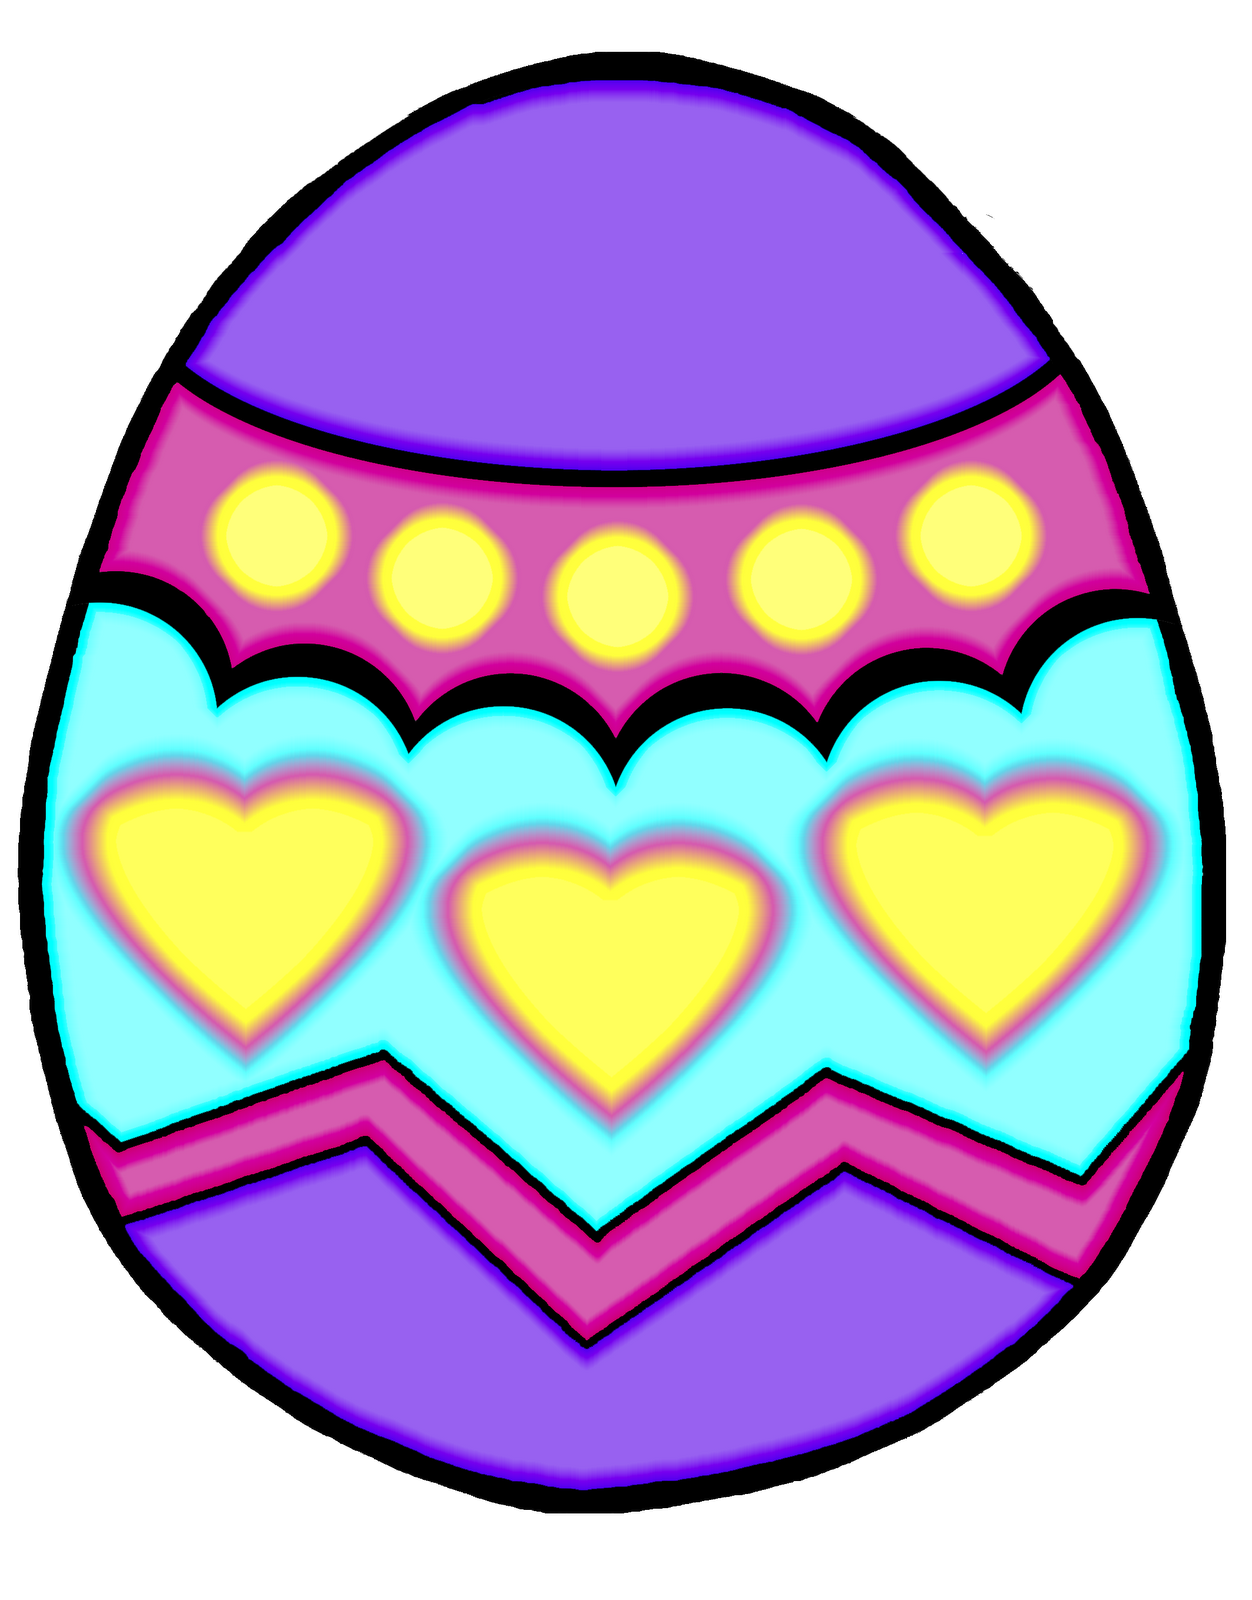 Easter egg clipart clipart freeuse download Easter Egg Clipart | Clipart Panda - Free Clipart Images clipart freeuse download